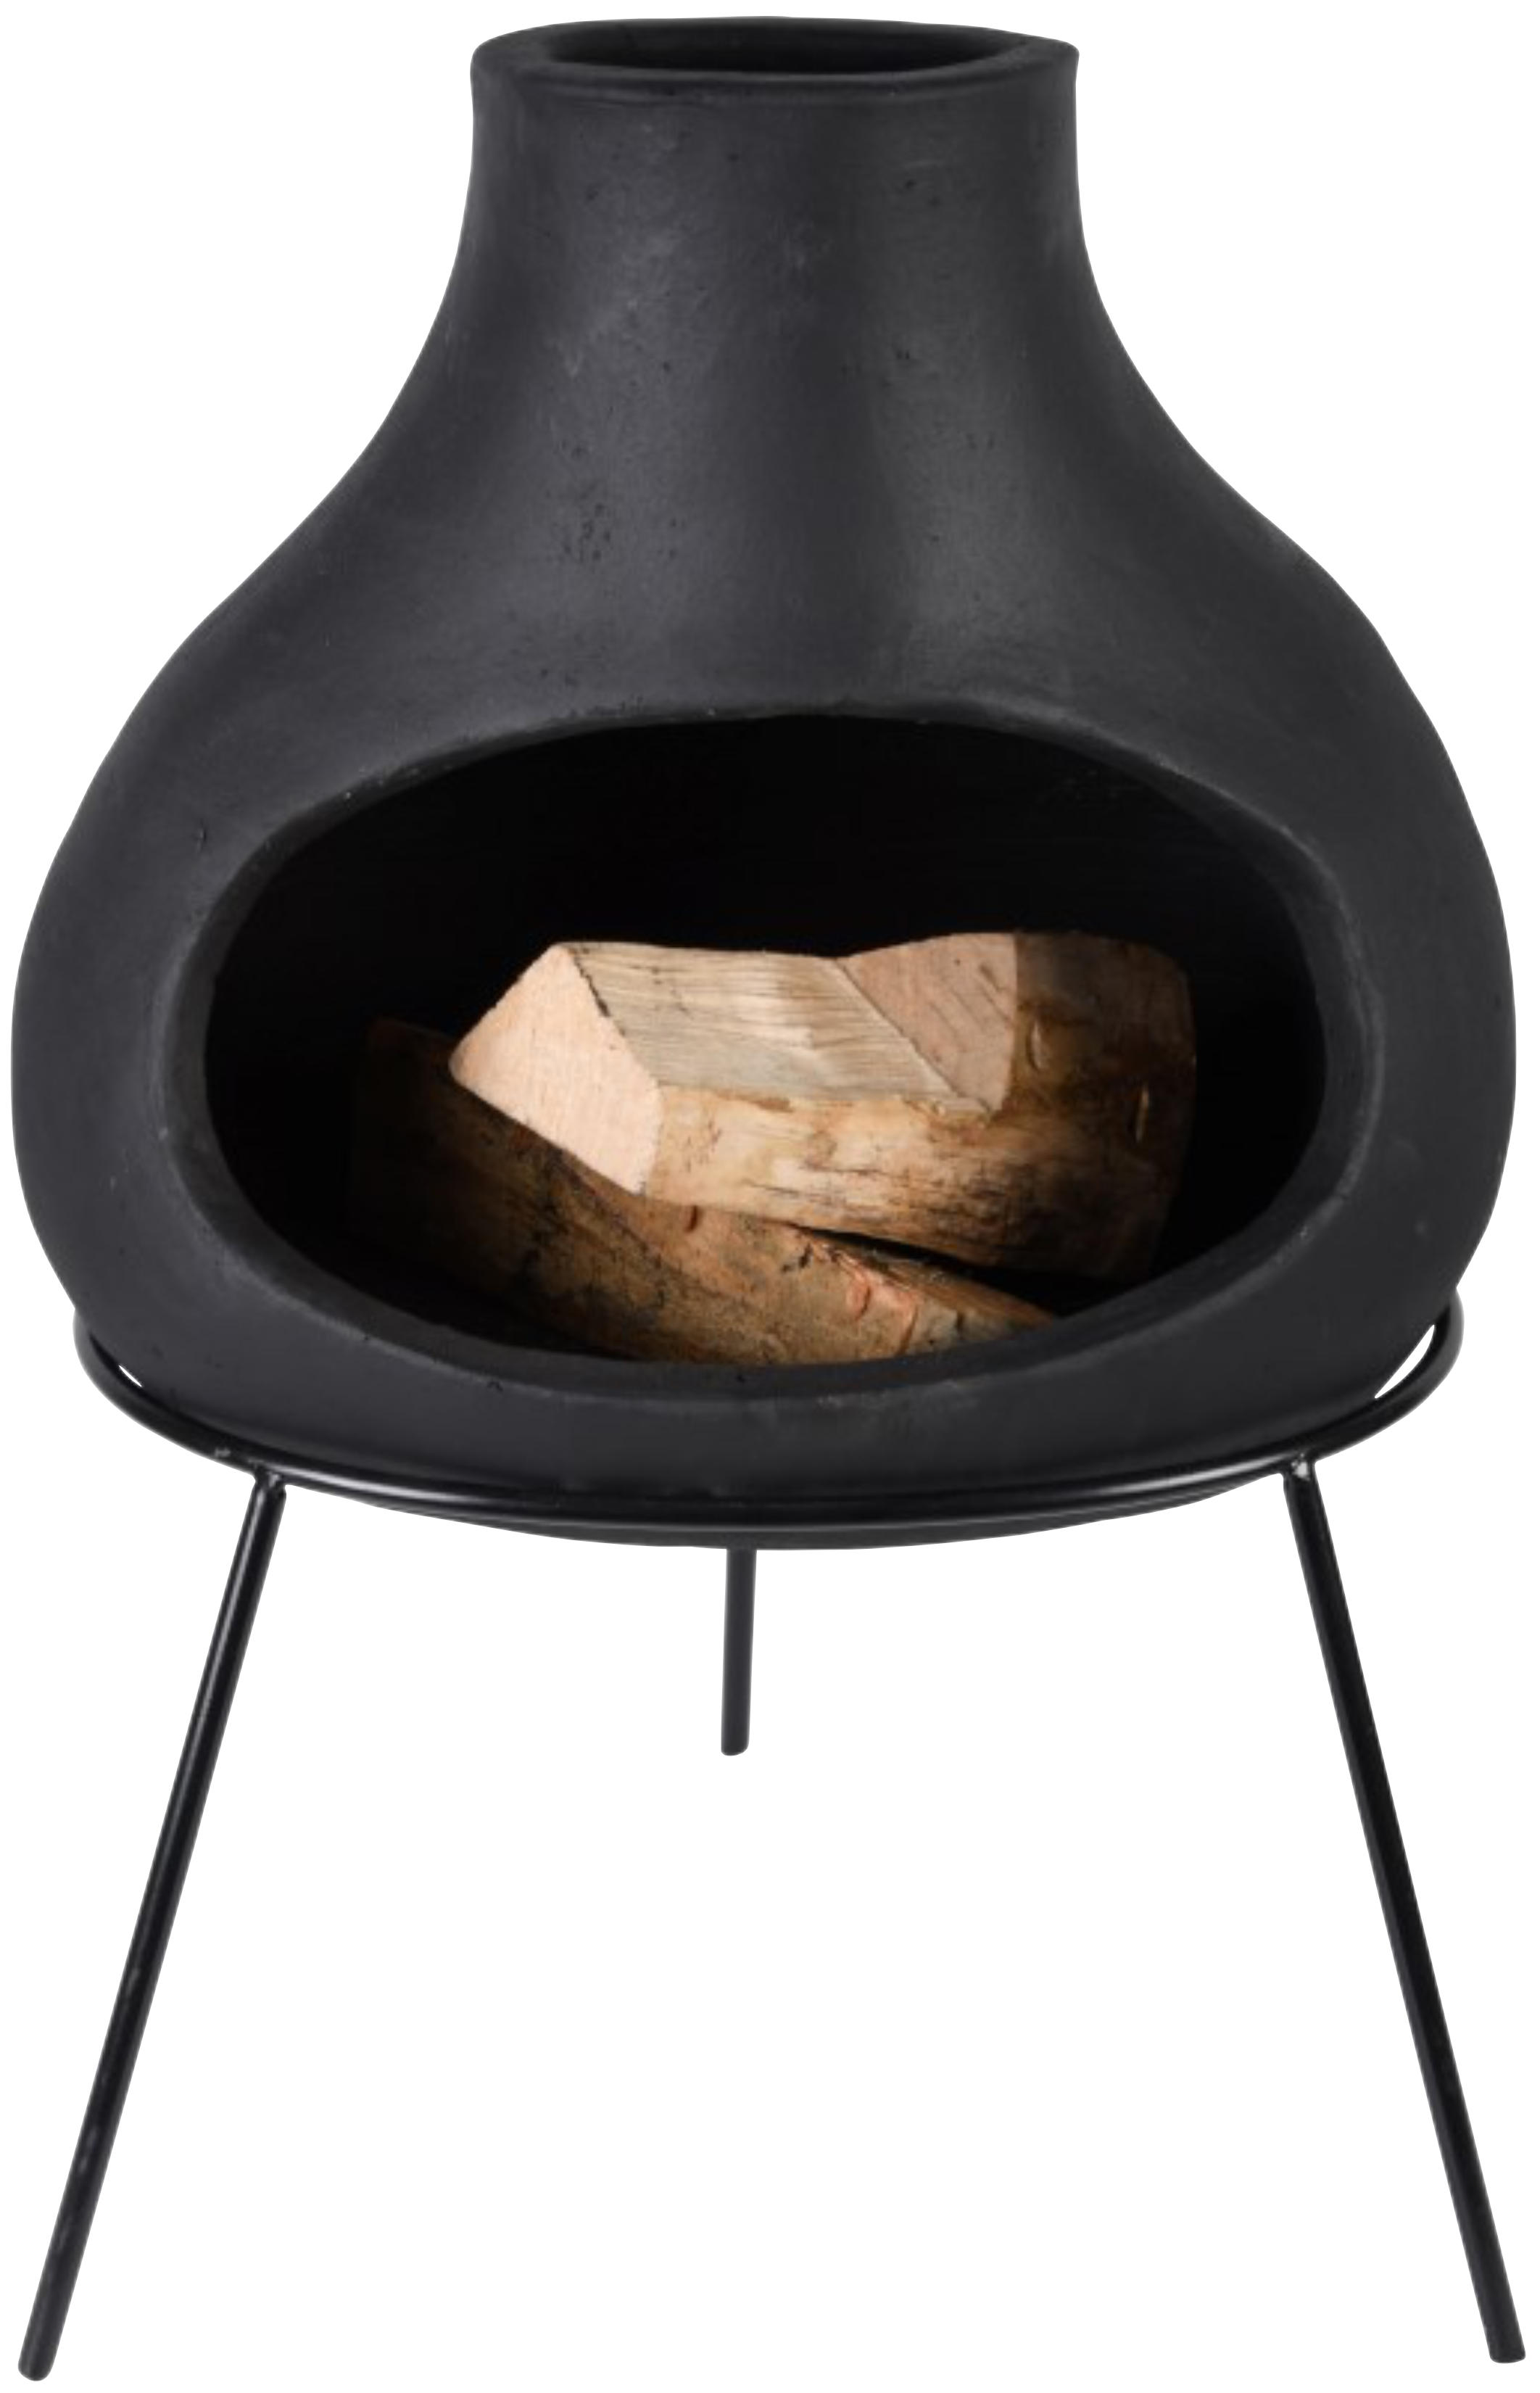 Black terracotta bulb heater